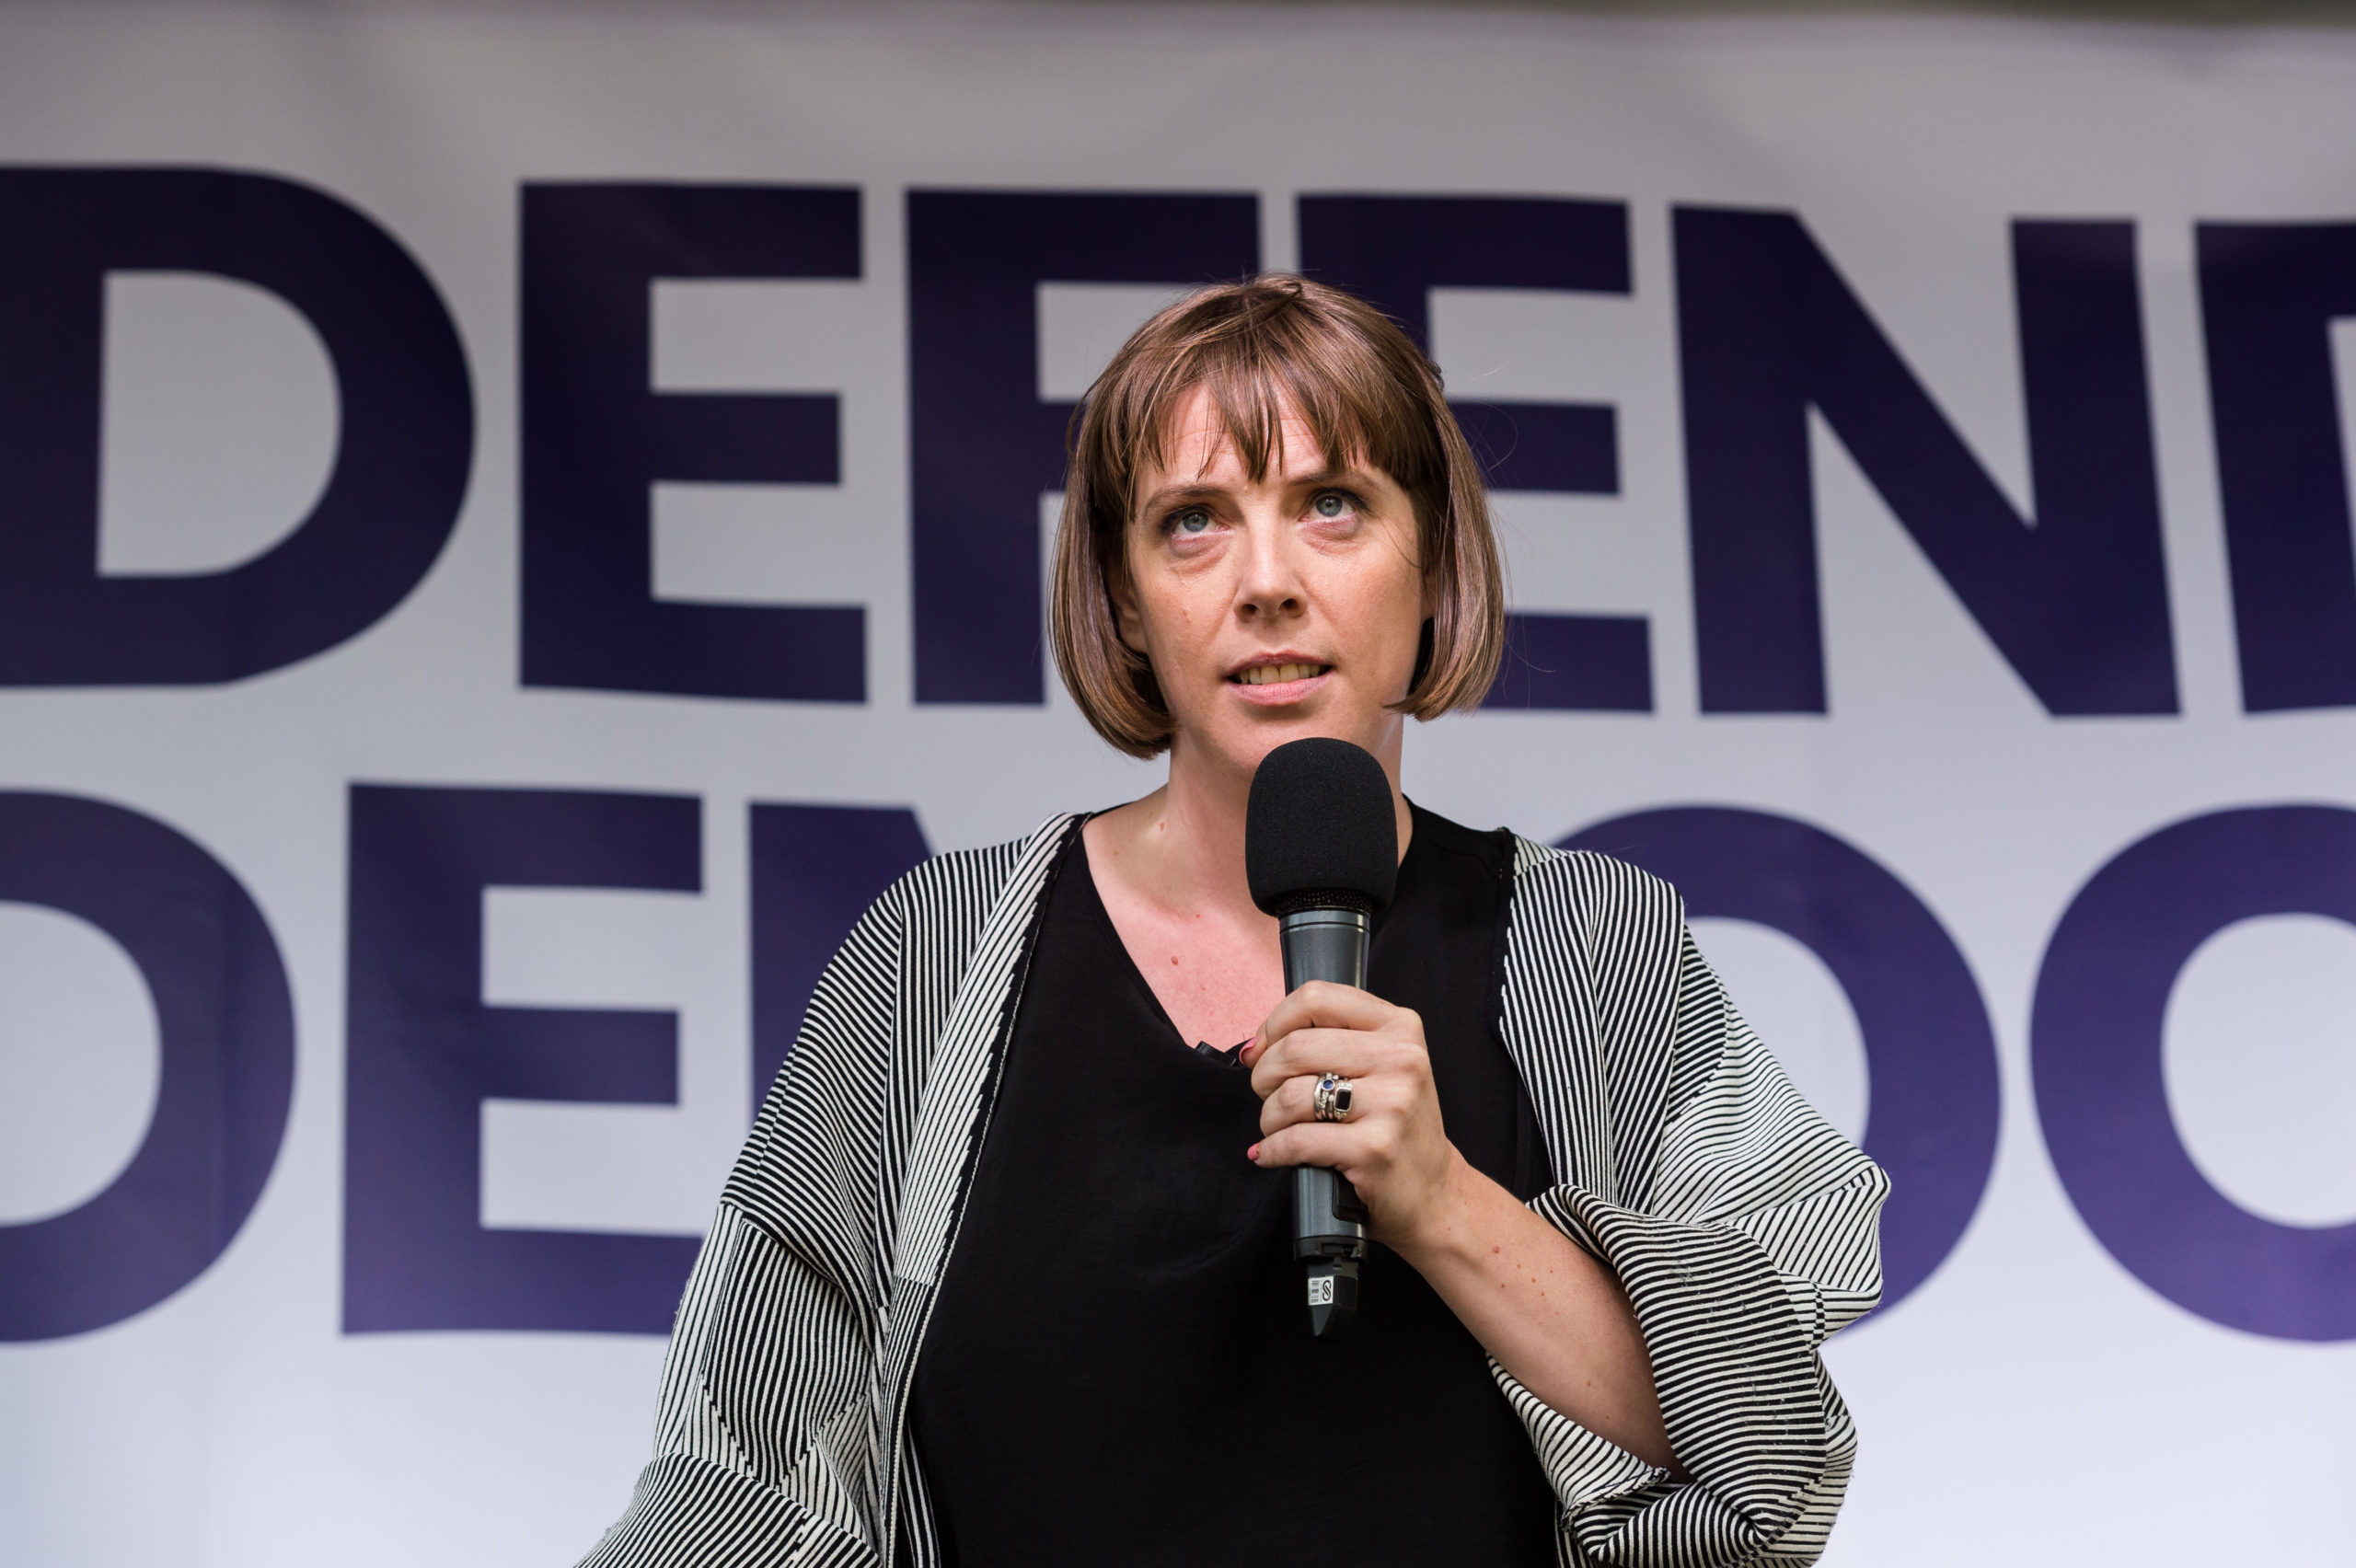 Jess Phillips quits Labour leadership race after gay bar rally, trans row